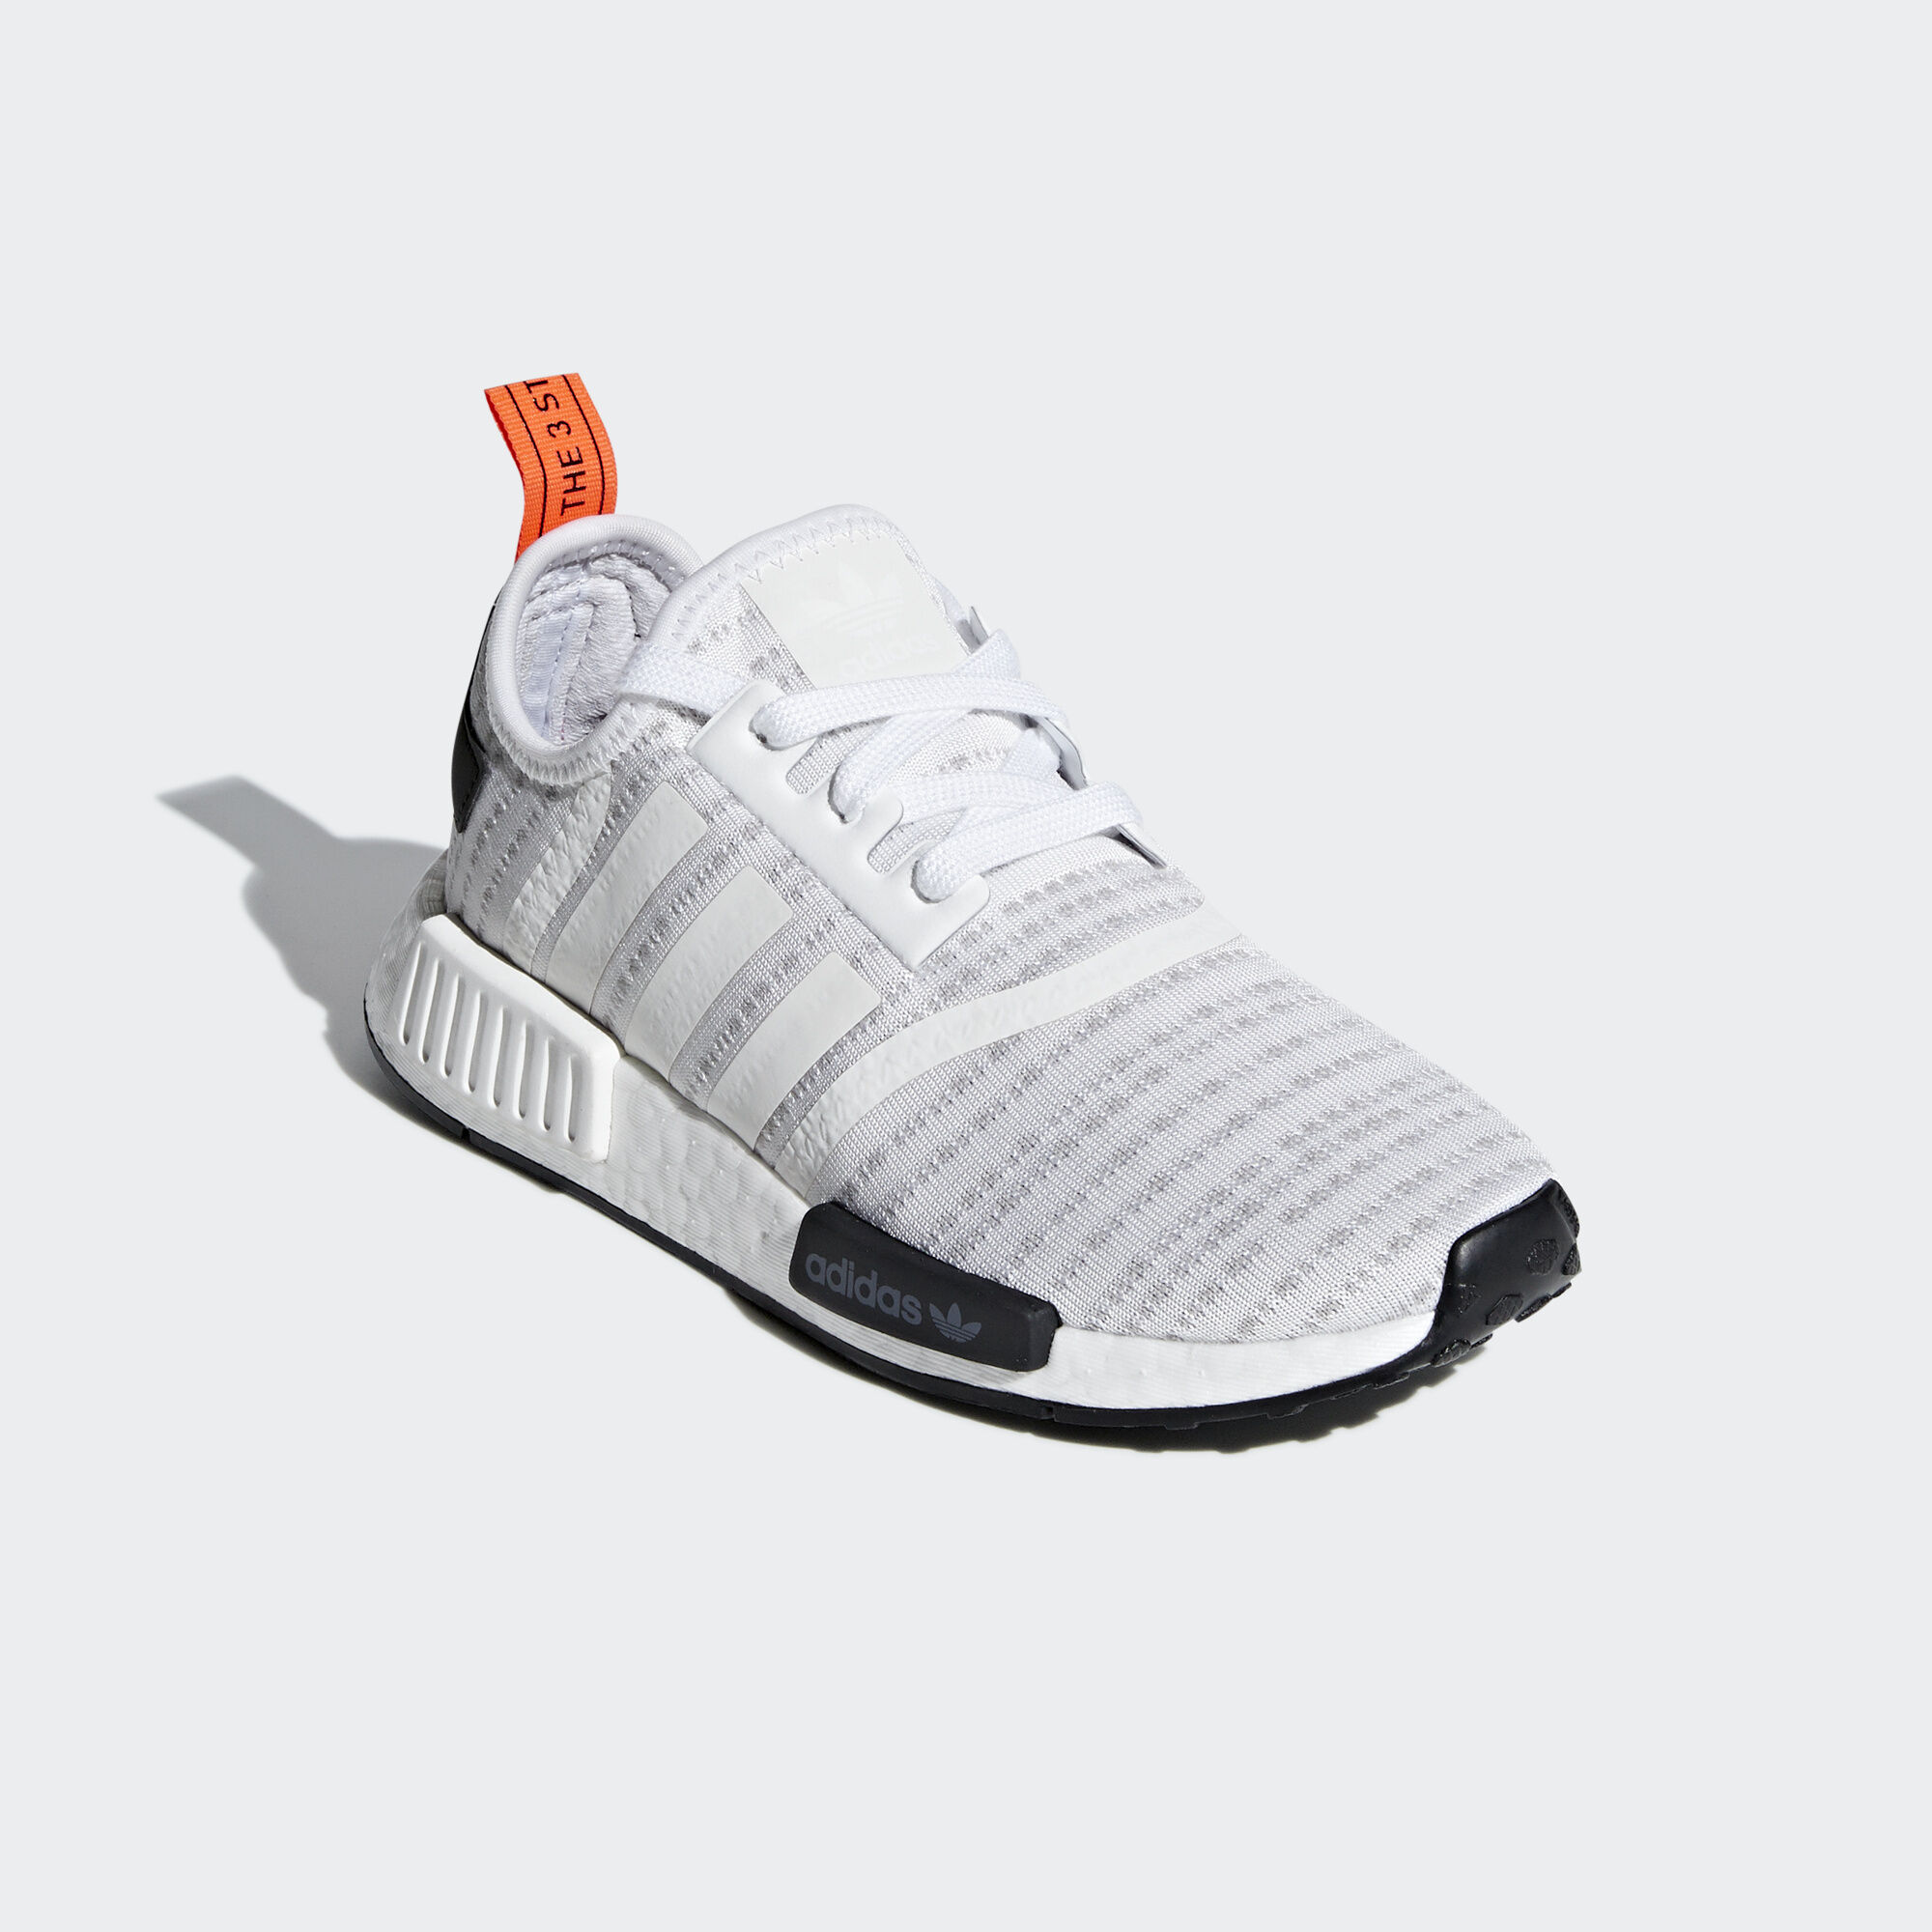 Kids Nmd Shoes